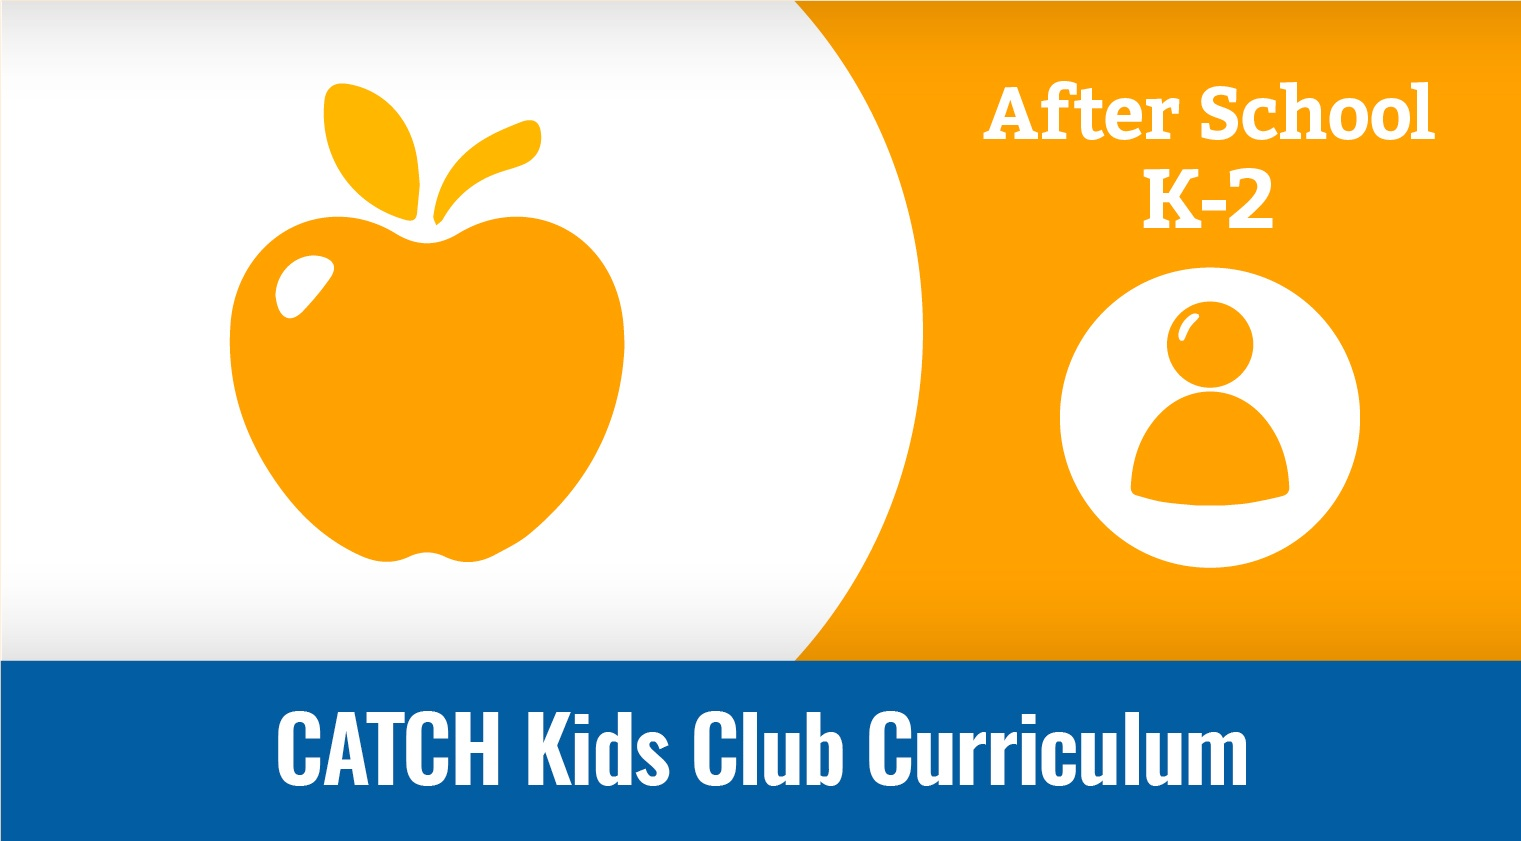 CATCH Kids Club K-2 Curriculum